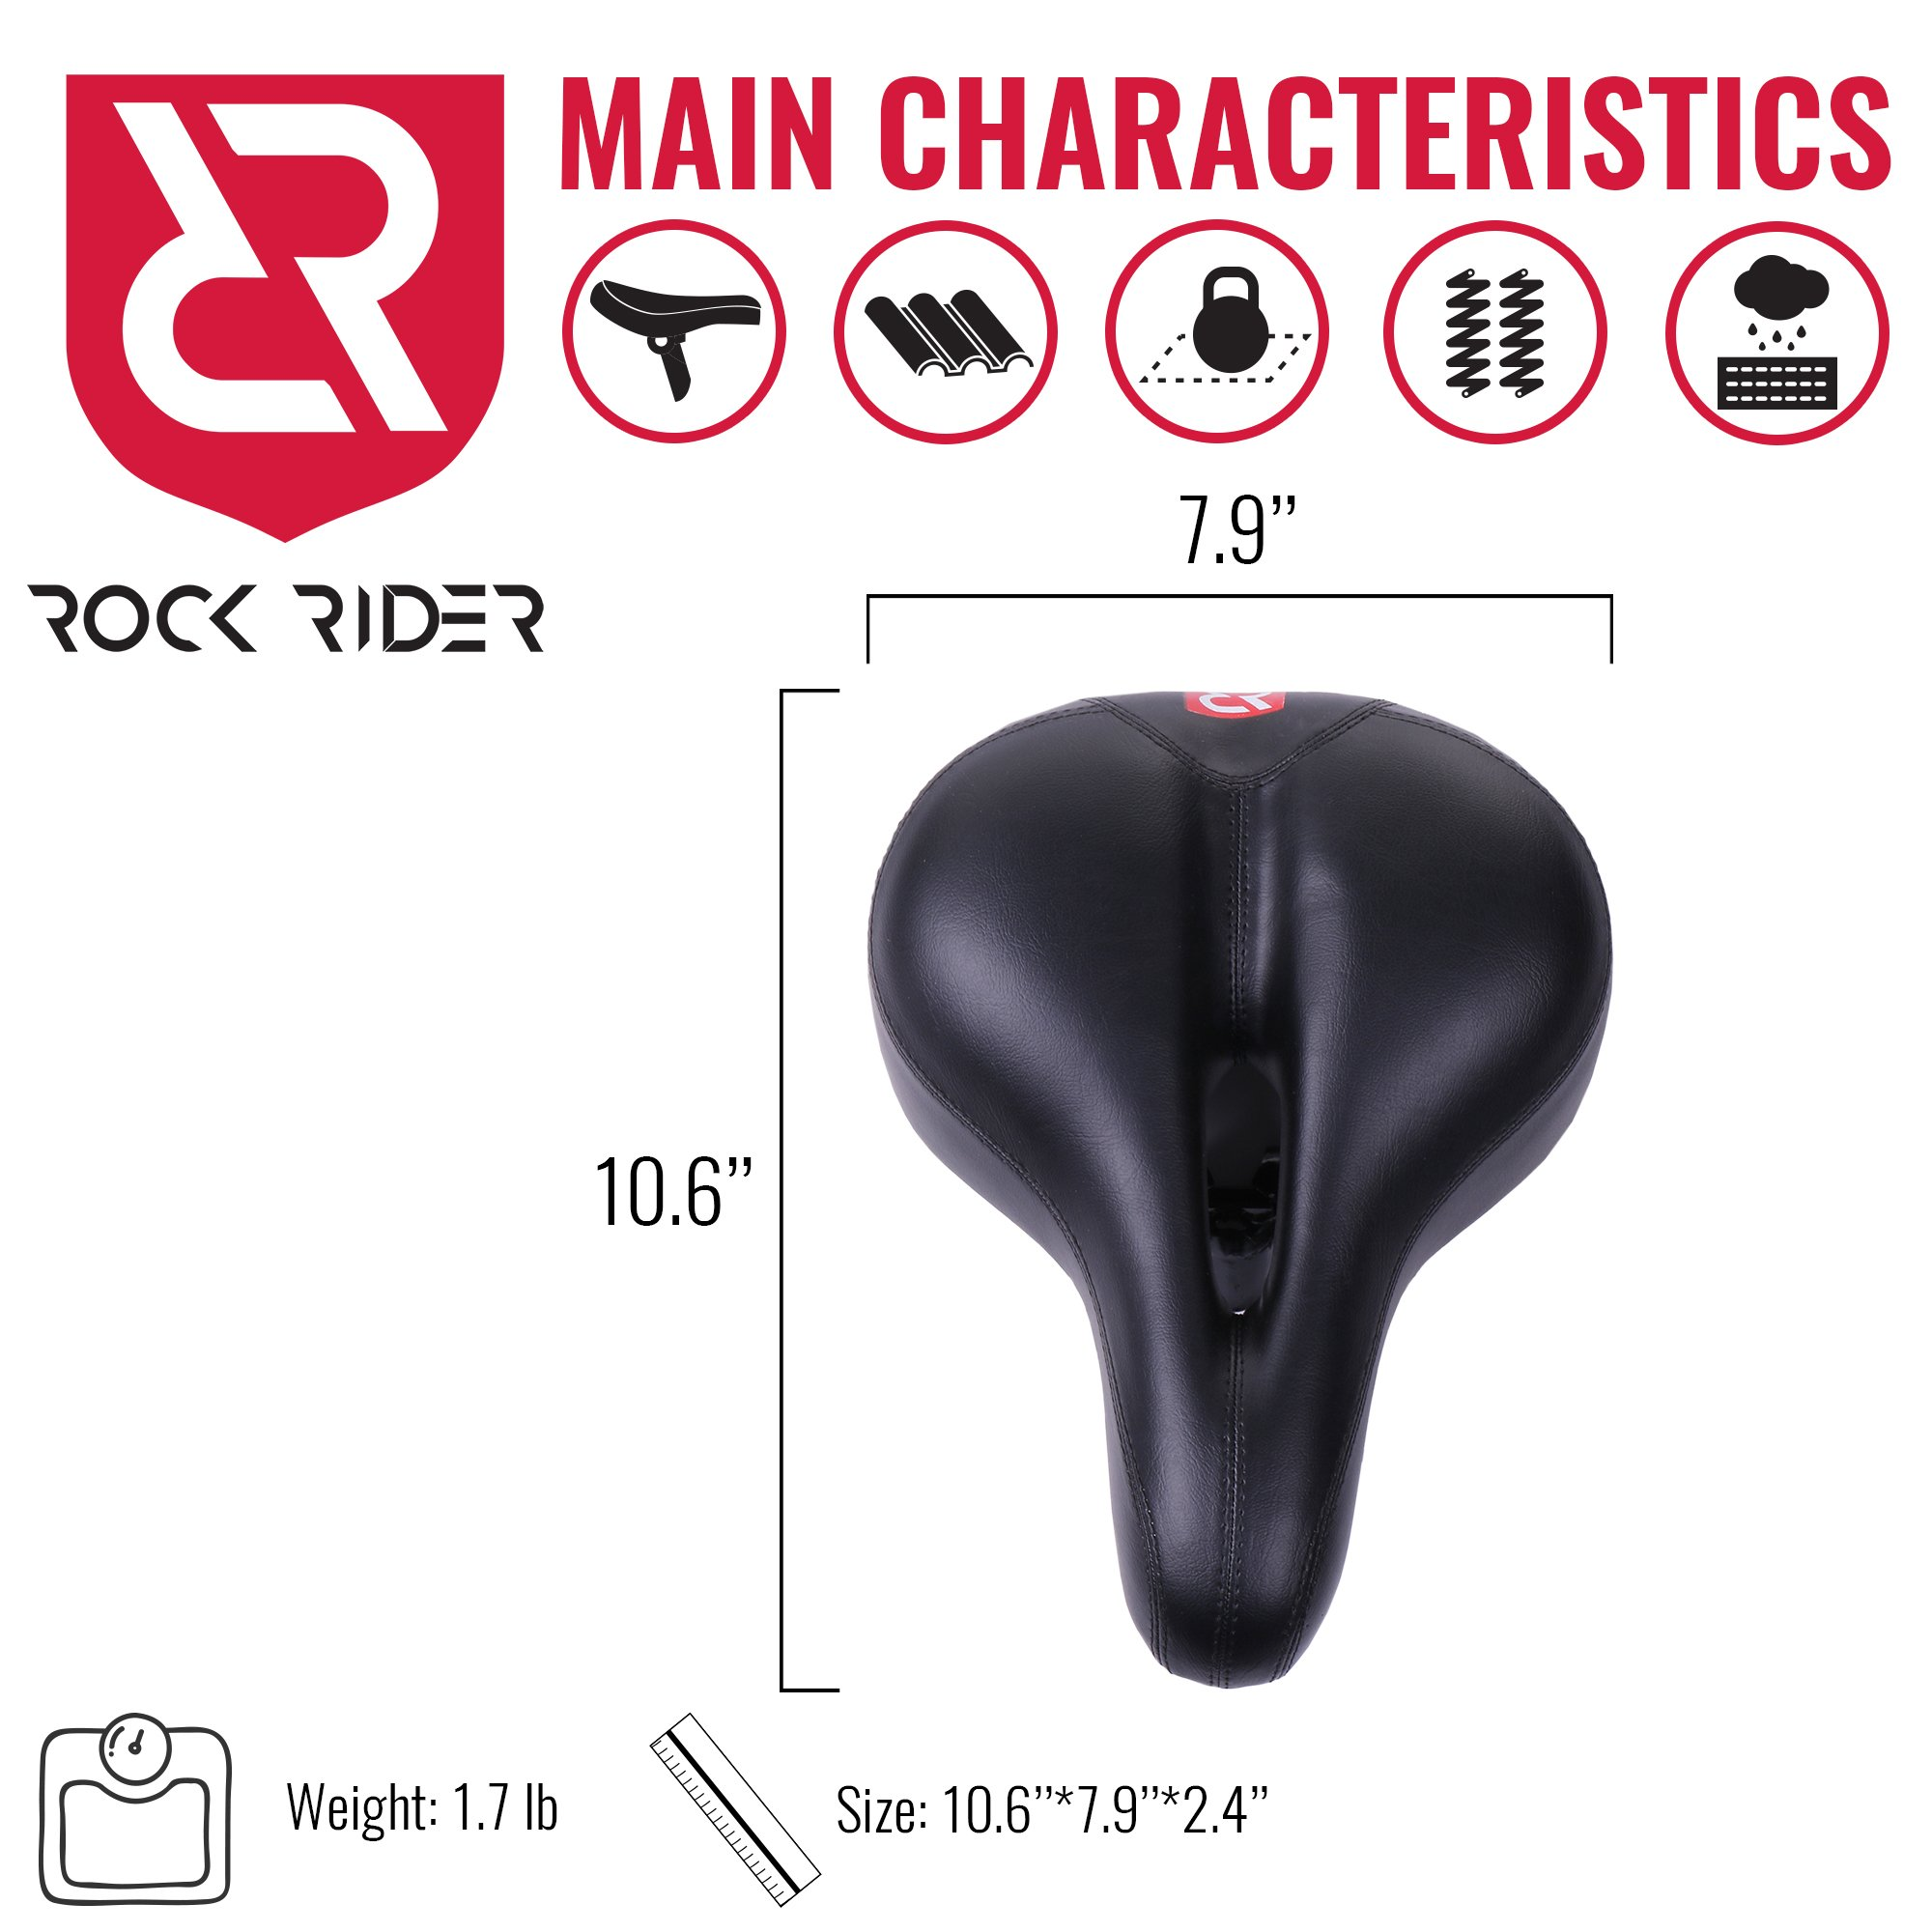 Rock Rider Extremely Comfortable Bicycle Seat Women Man Comfort Healthy Gel Bike Saddle Padded Wide Seat Cover (Black) by Rock Rider (Image #5)